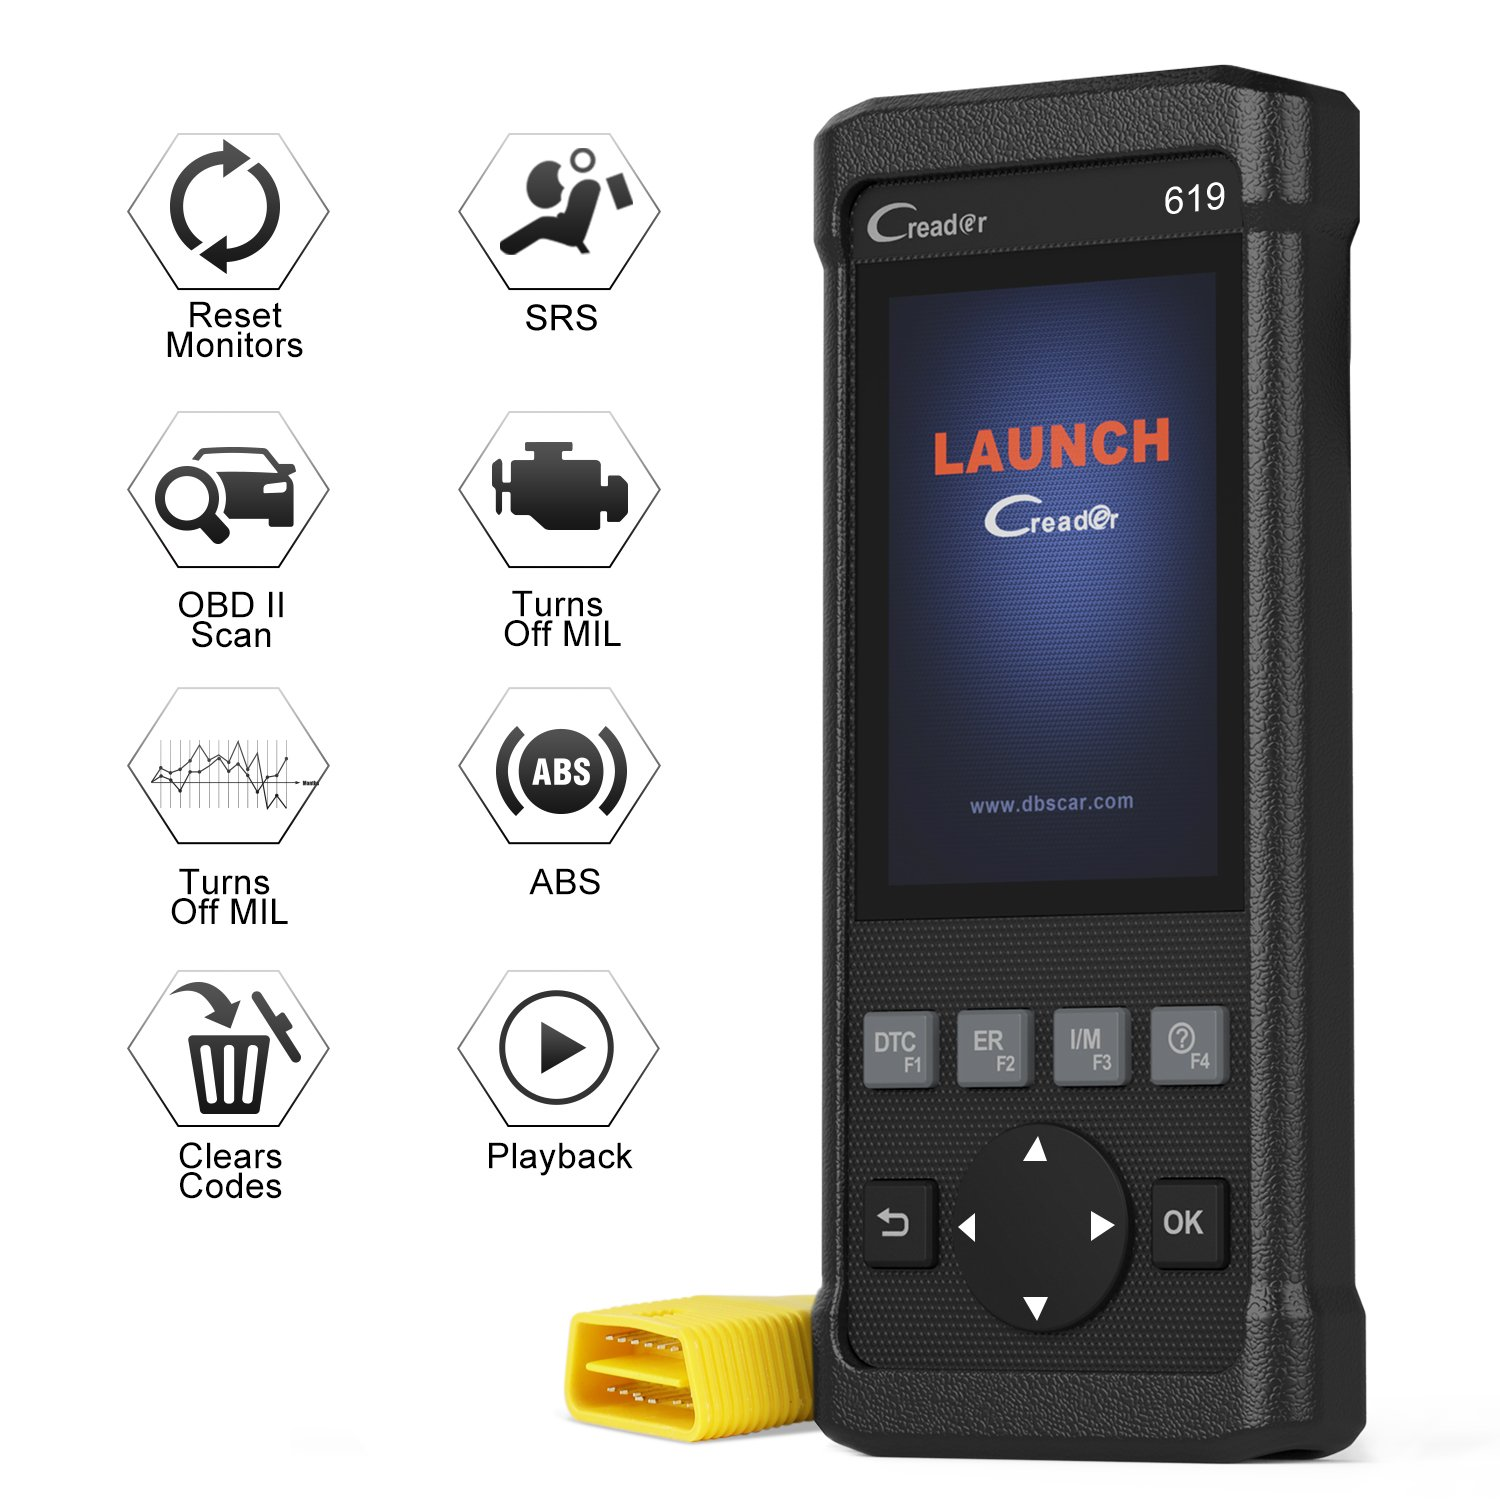 Launch Creader CR619 Automotive ABS SRS Diagnostic Scan Tool Auto Obd ii OBD2 Scanner Car Code Reader Check Engine SRS ABS Airbag Light Fault Code Reader with EVAP O2 On-board Monitor Test by LAUNCH (Image #1)